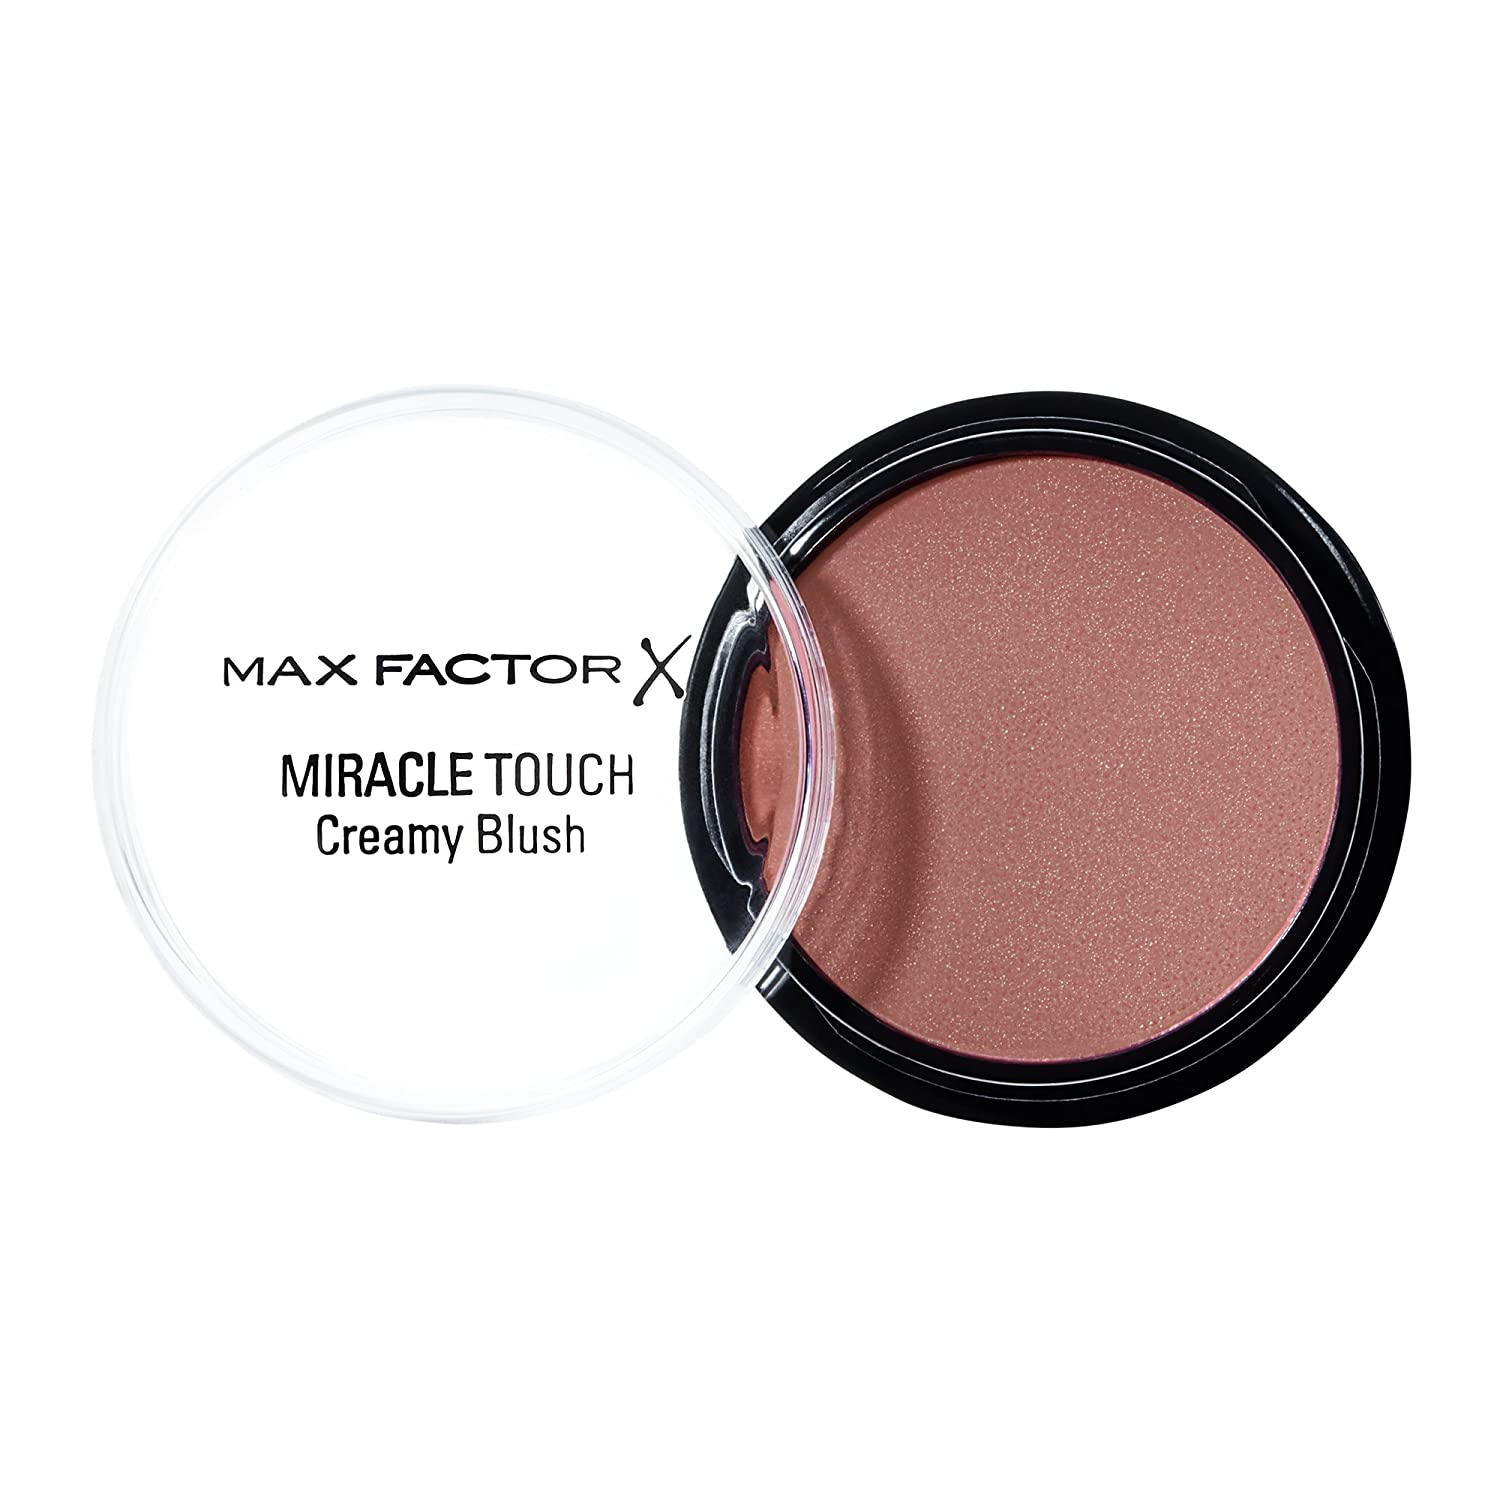 Miracle Touch Creamy Blush - # 03 Soft Copper by Max Factor for Women - 11.5 g Blush 81107060